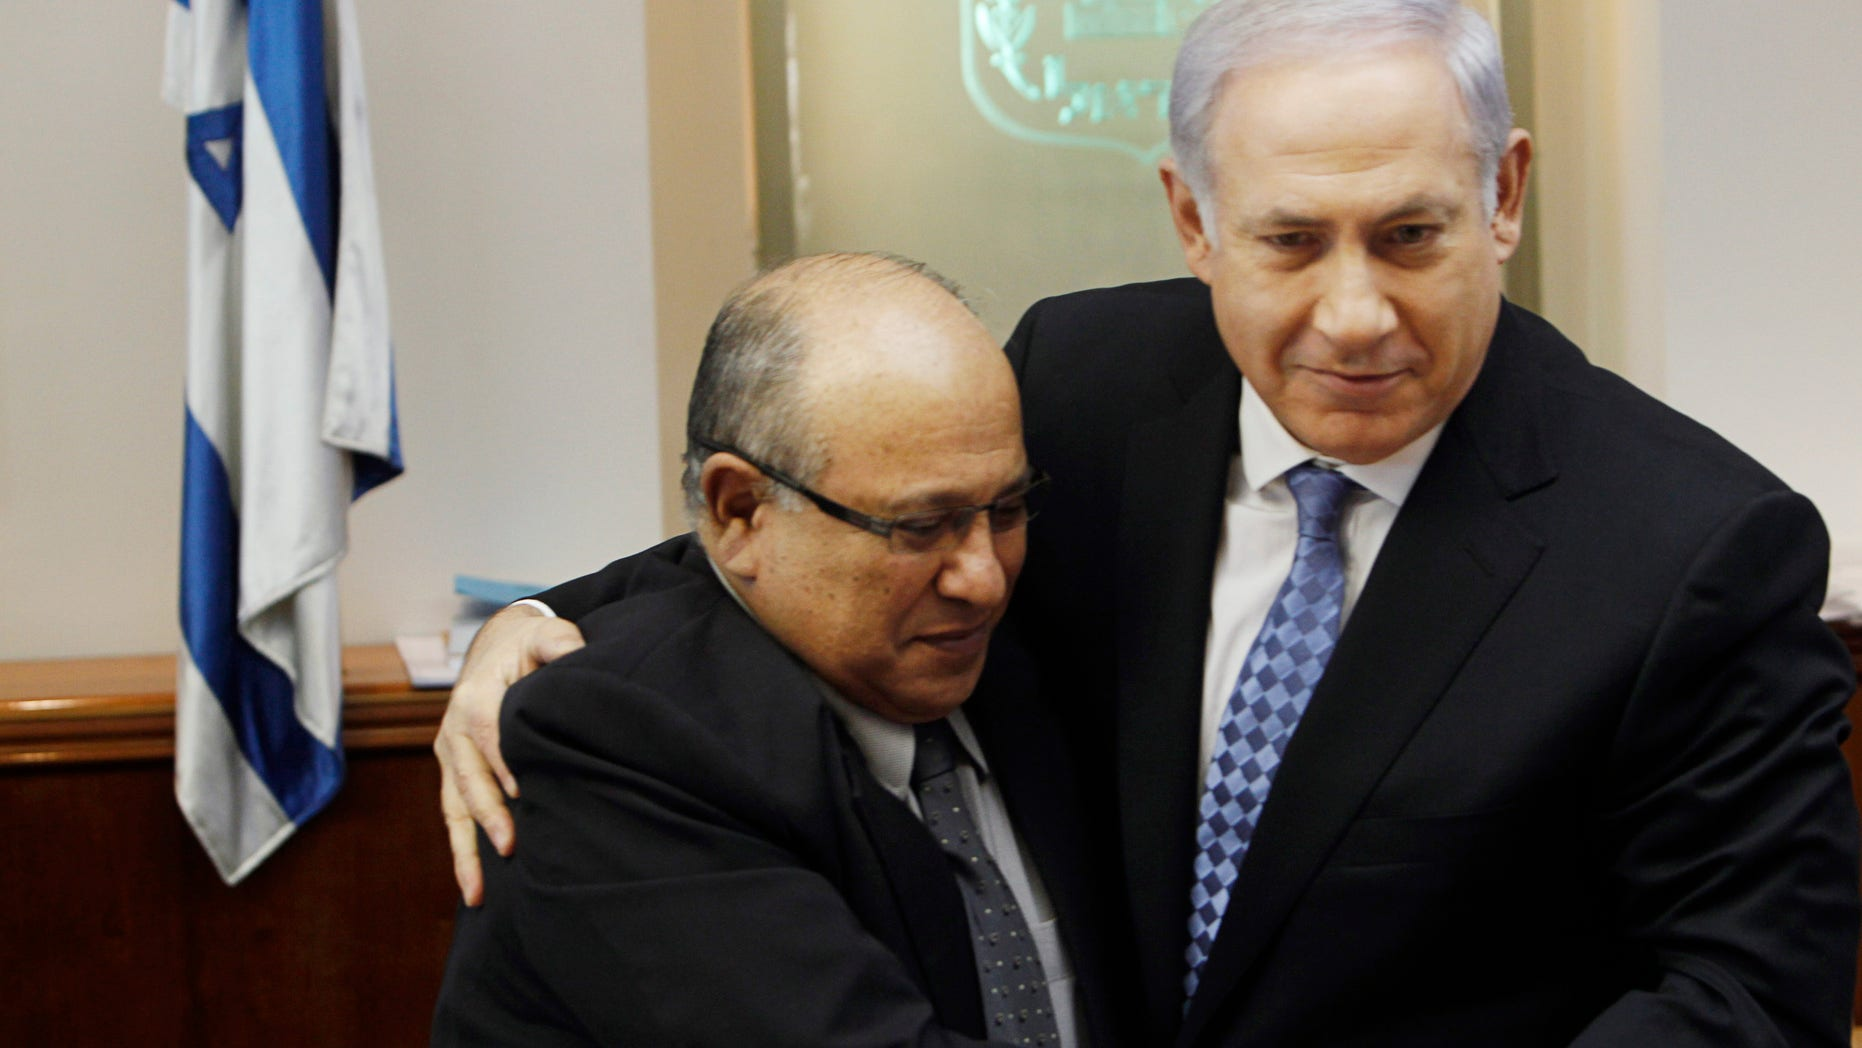 In this Jan. 2, 2011 file photo, Israel's Prime Minister Benjamin Netanyahu, right, hugs Meir Dagan, then outgoing Mossad chief, after thanking him at the beginning of the weekly cabinet meeting in Jerusalem. Israeli media on Thursday, 2 June, 2011, cite the recently retired Mossad chief Meir Dagan as saying there are no plans to attack Iran within the next two years. (AP/File)